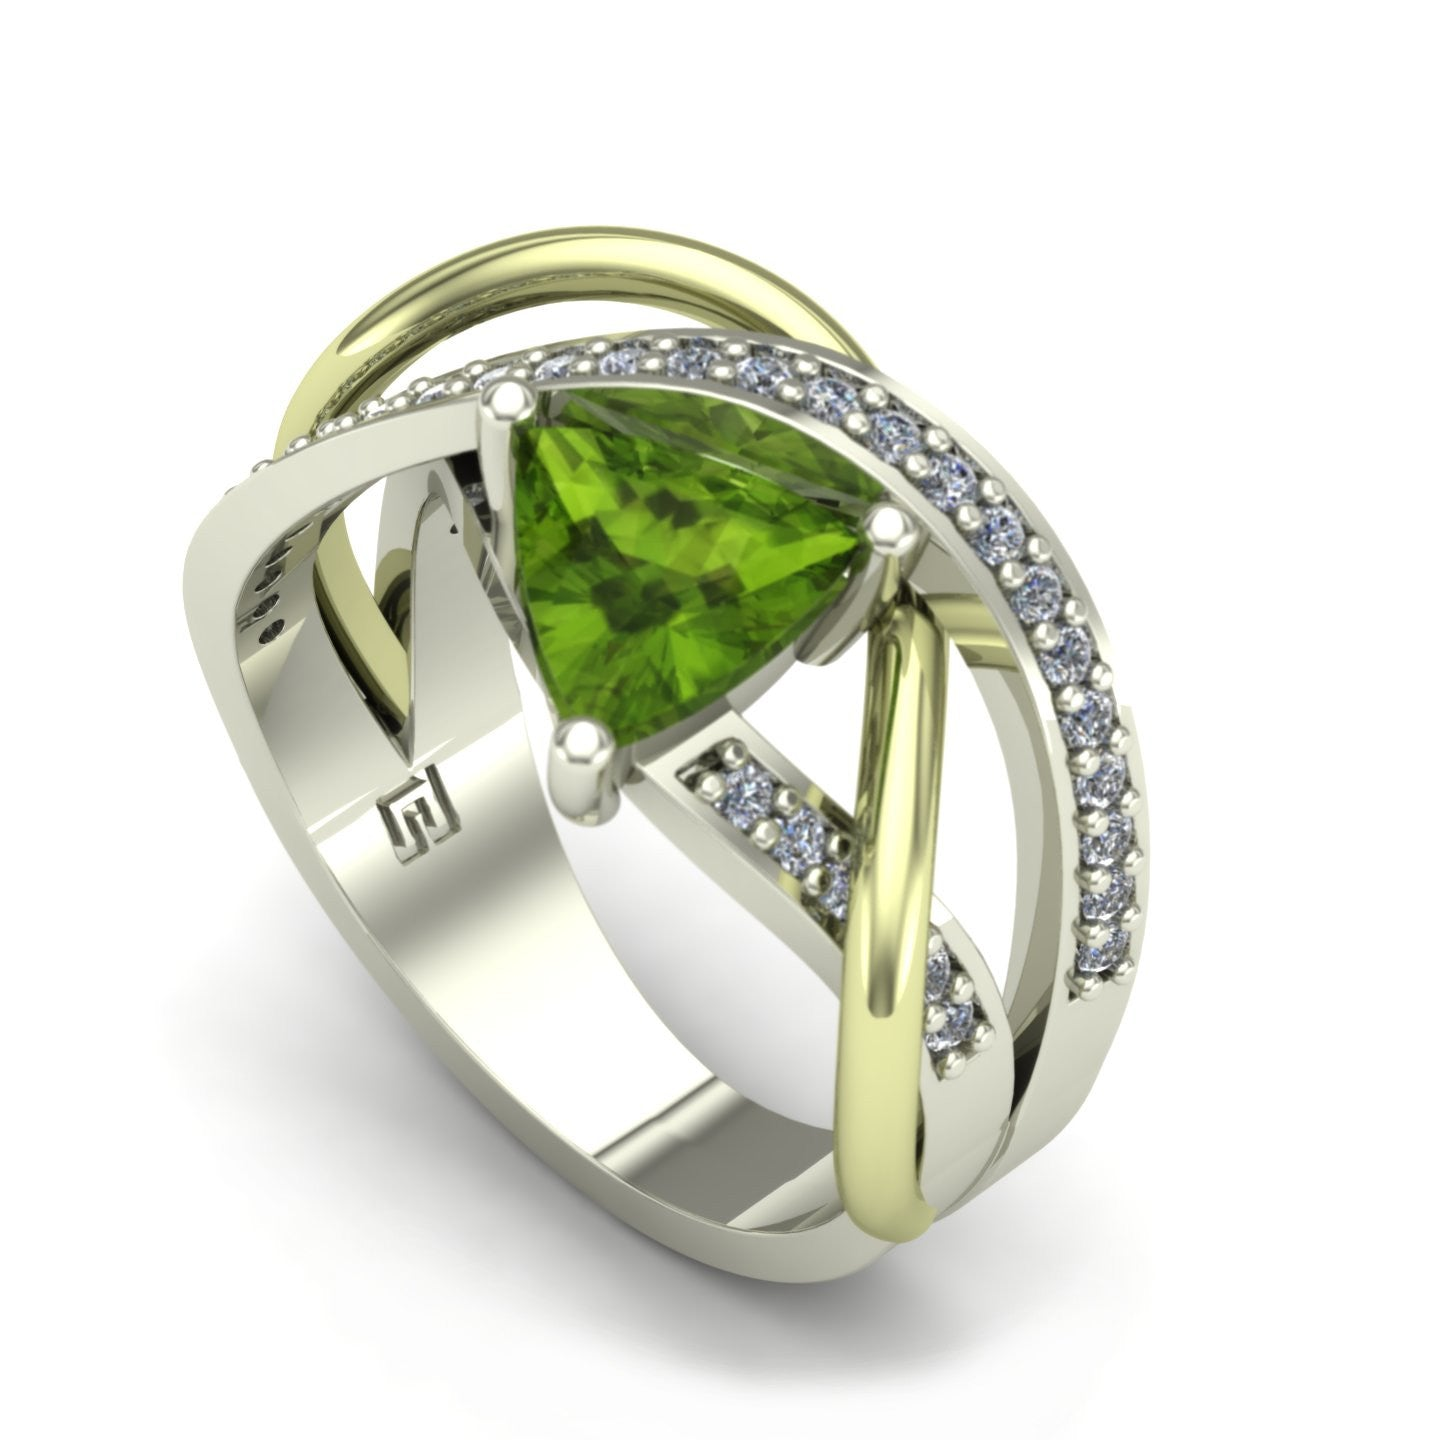 Peridot and diamond abstract ring in 14k white and green gold